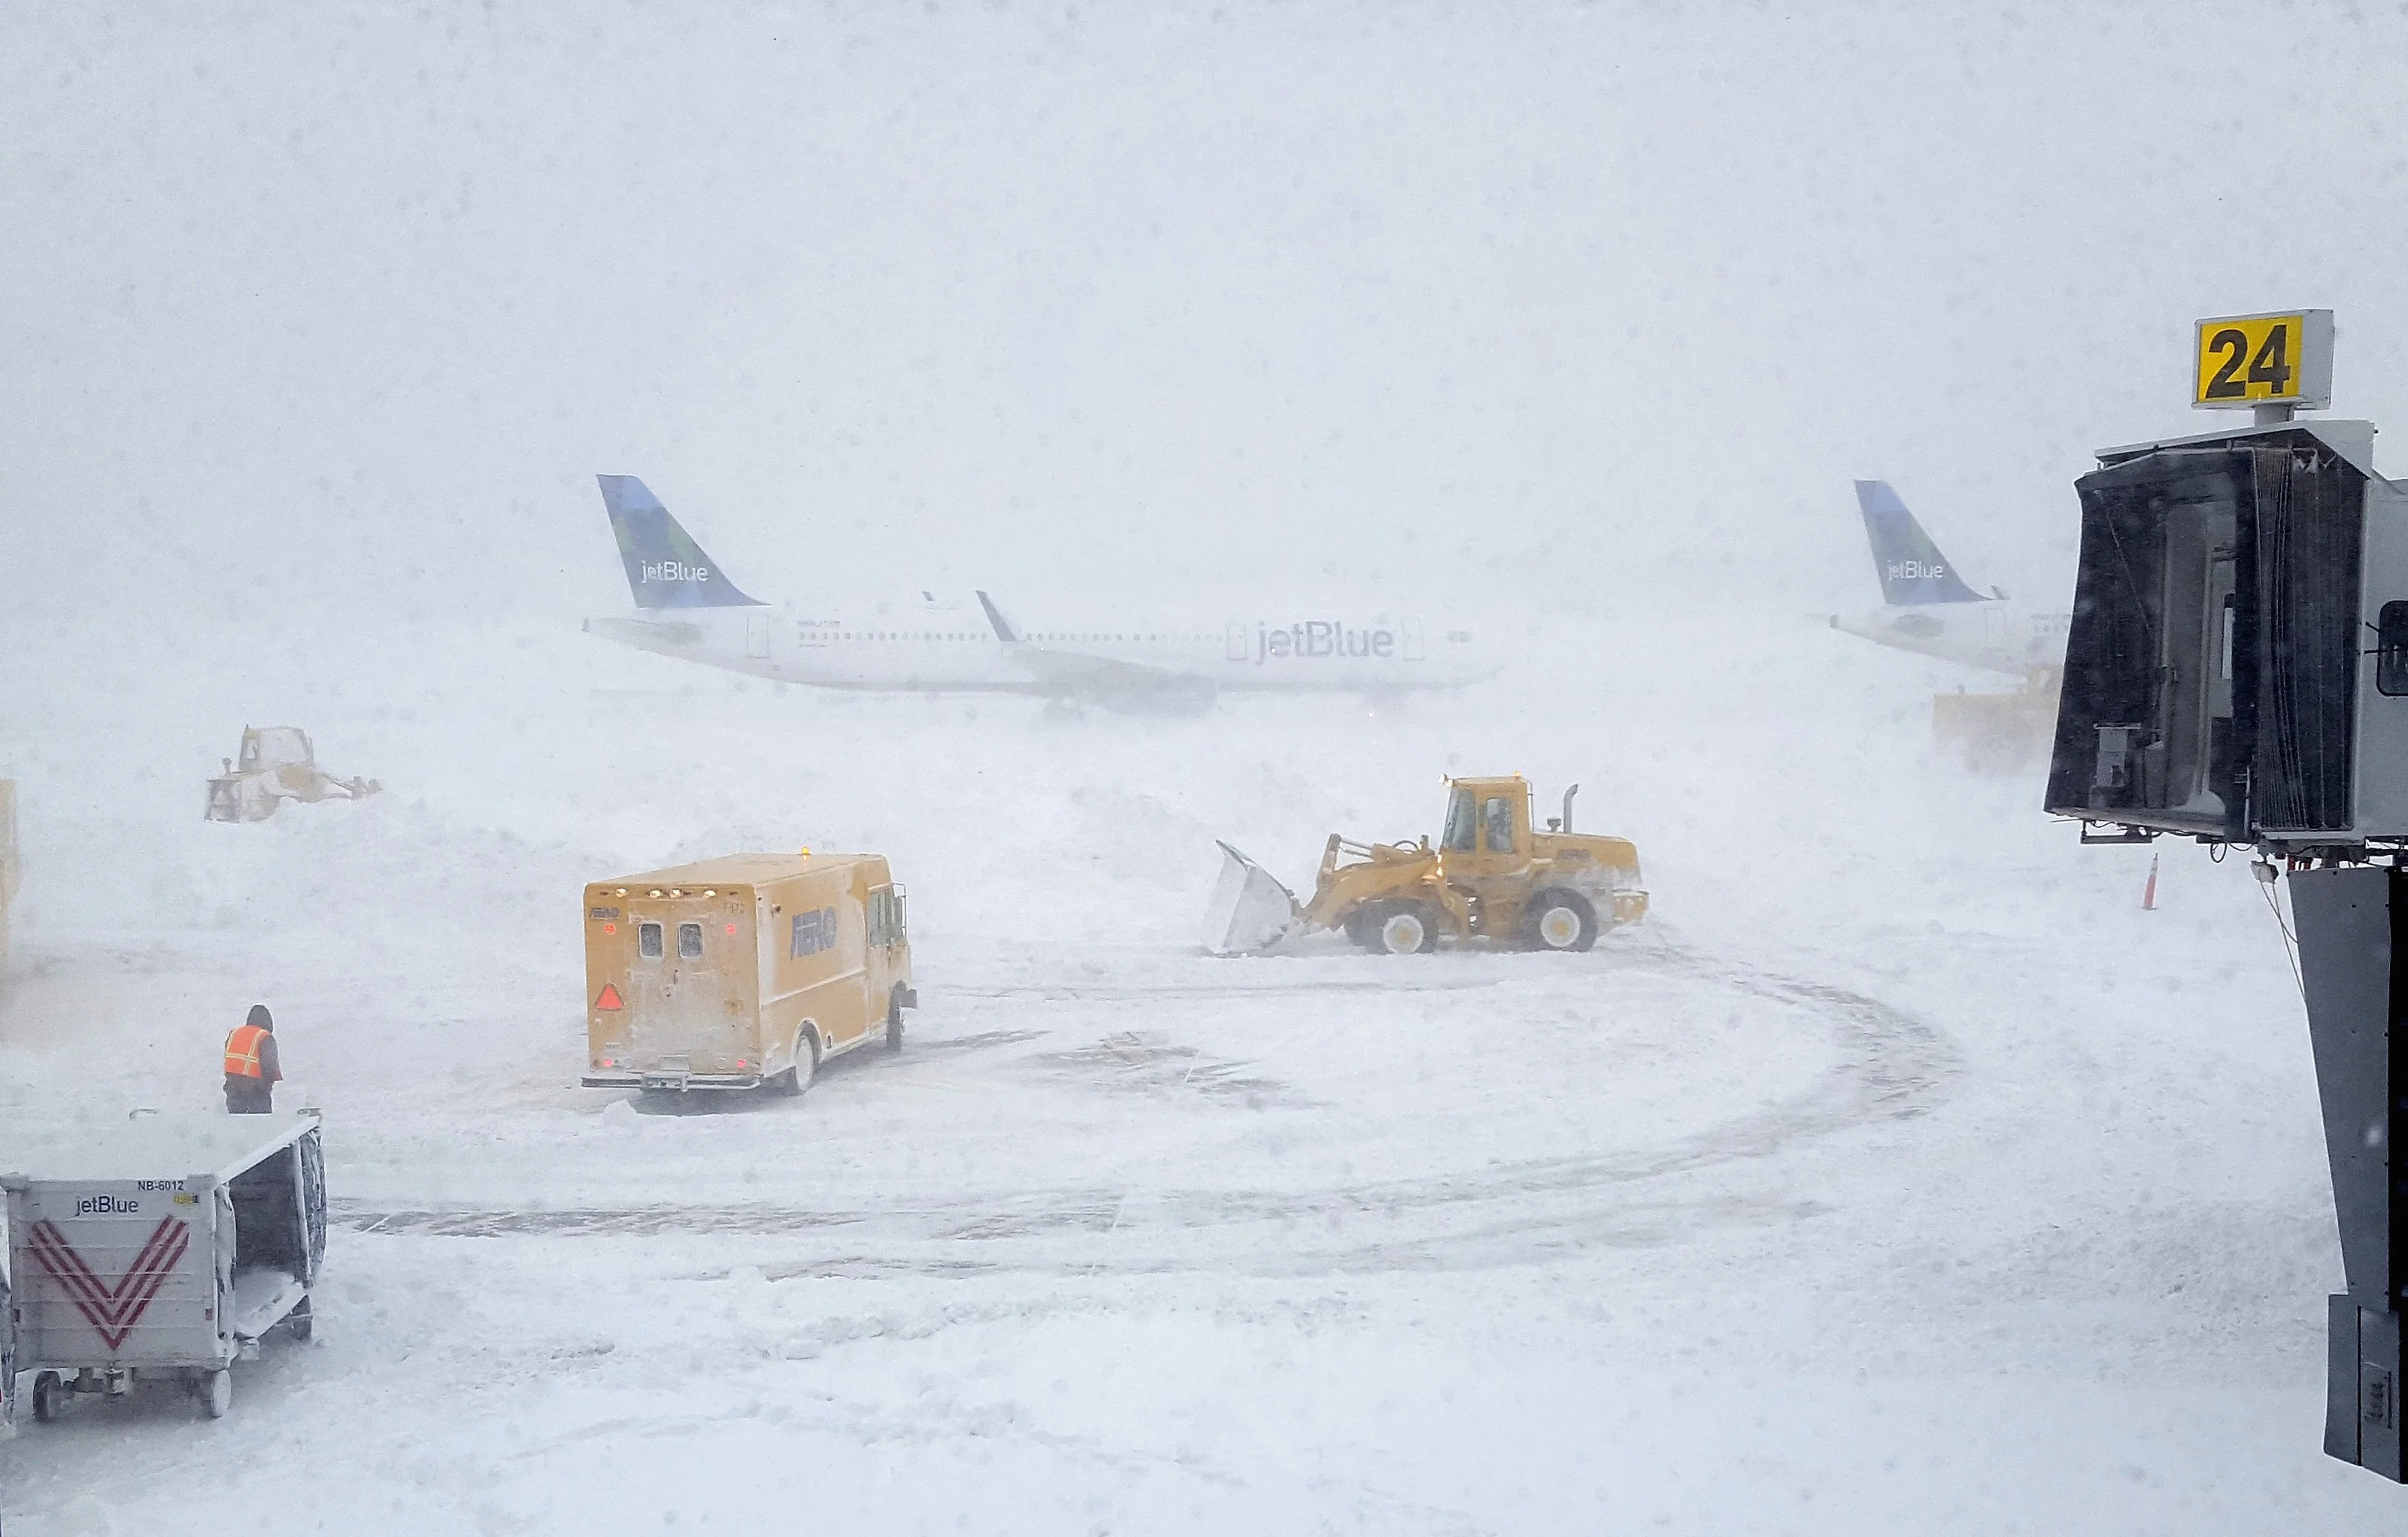 How Do Pilots Take Off in a Snowstorm?